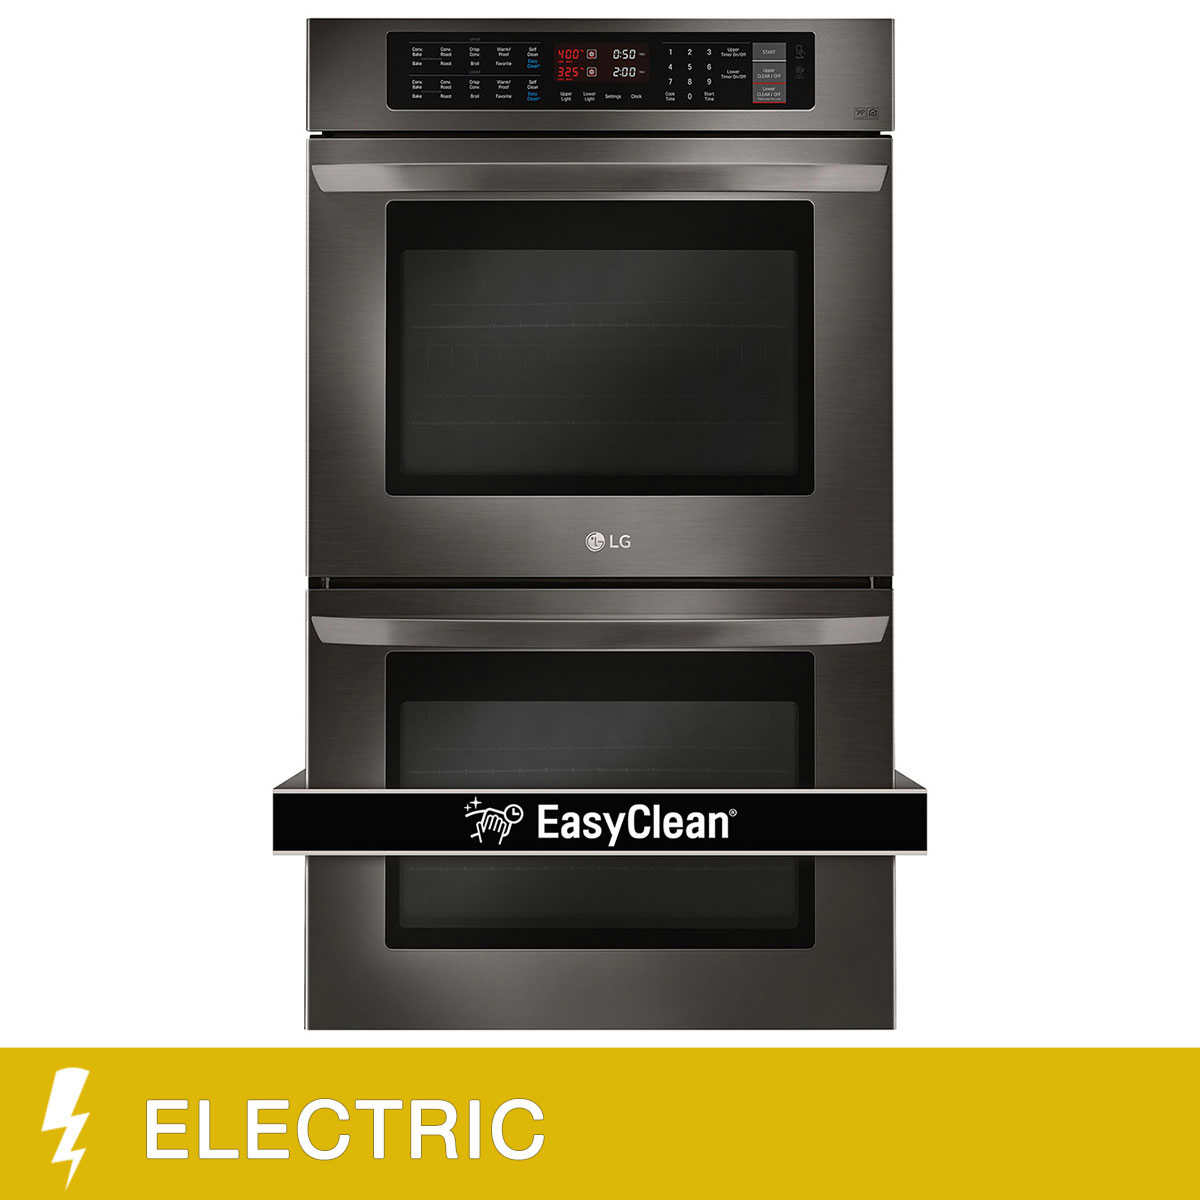 Wall oven under cooktop - Lg 4 7cuft Upper Lower Capacity Double Built In Wall Oven With Crisp Convection